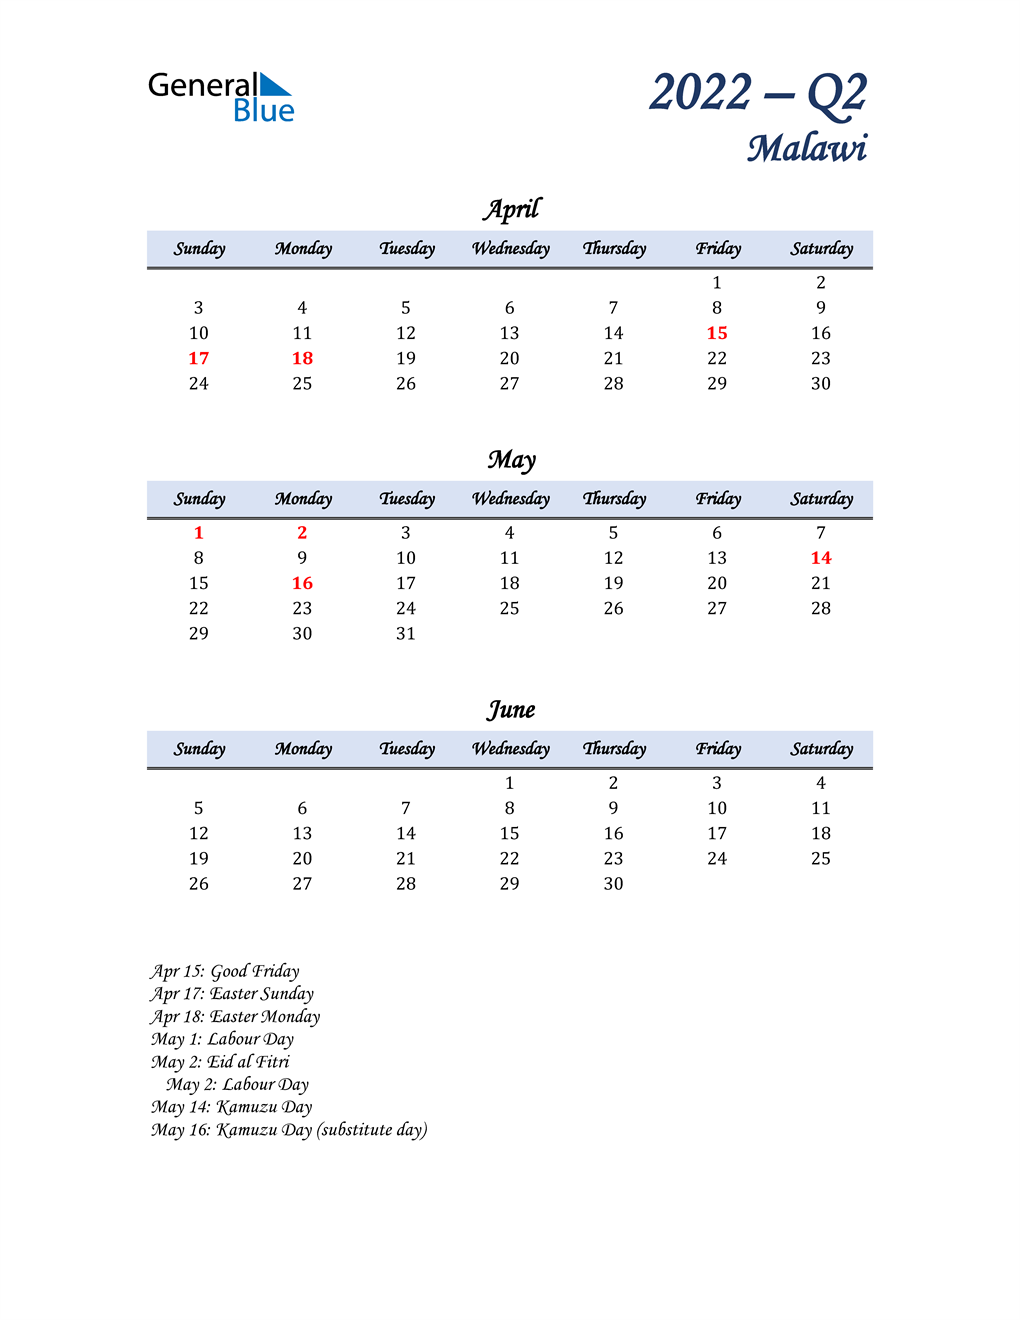 April, May, and June Calendar for Malawi